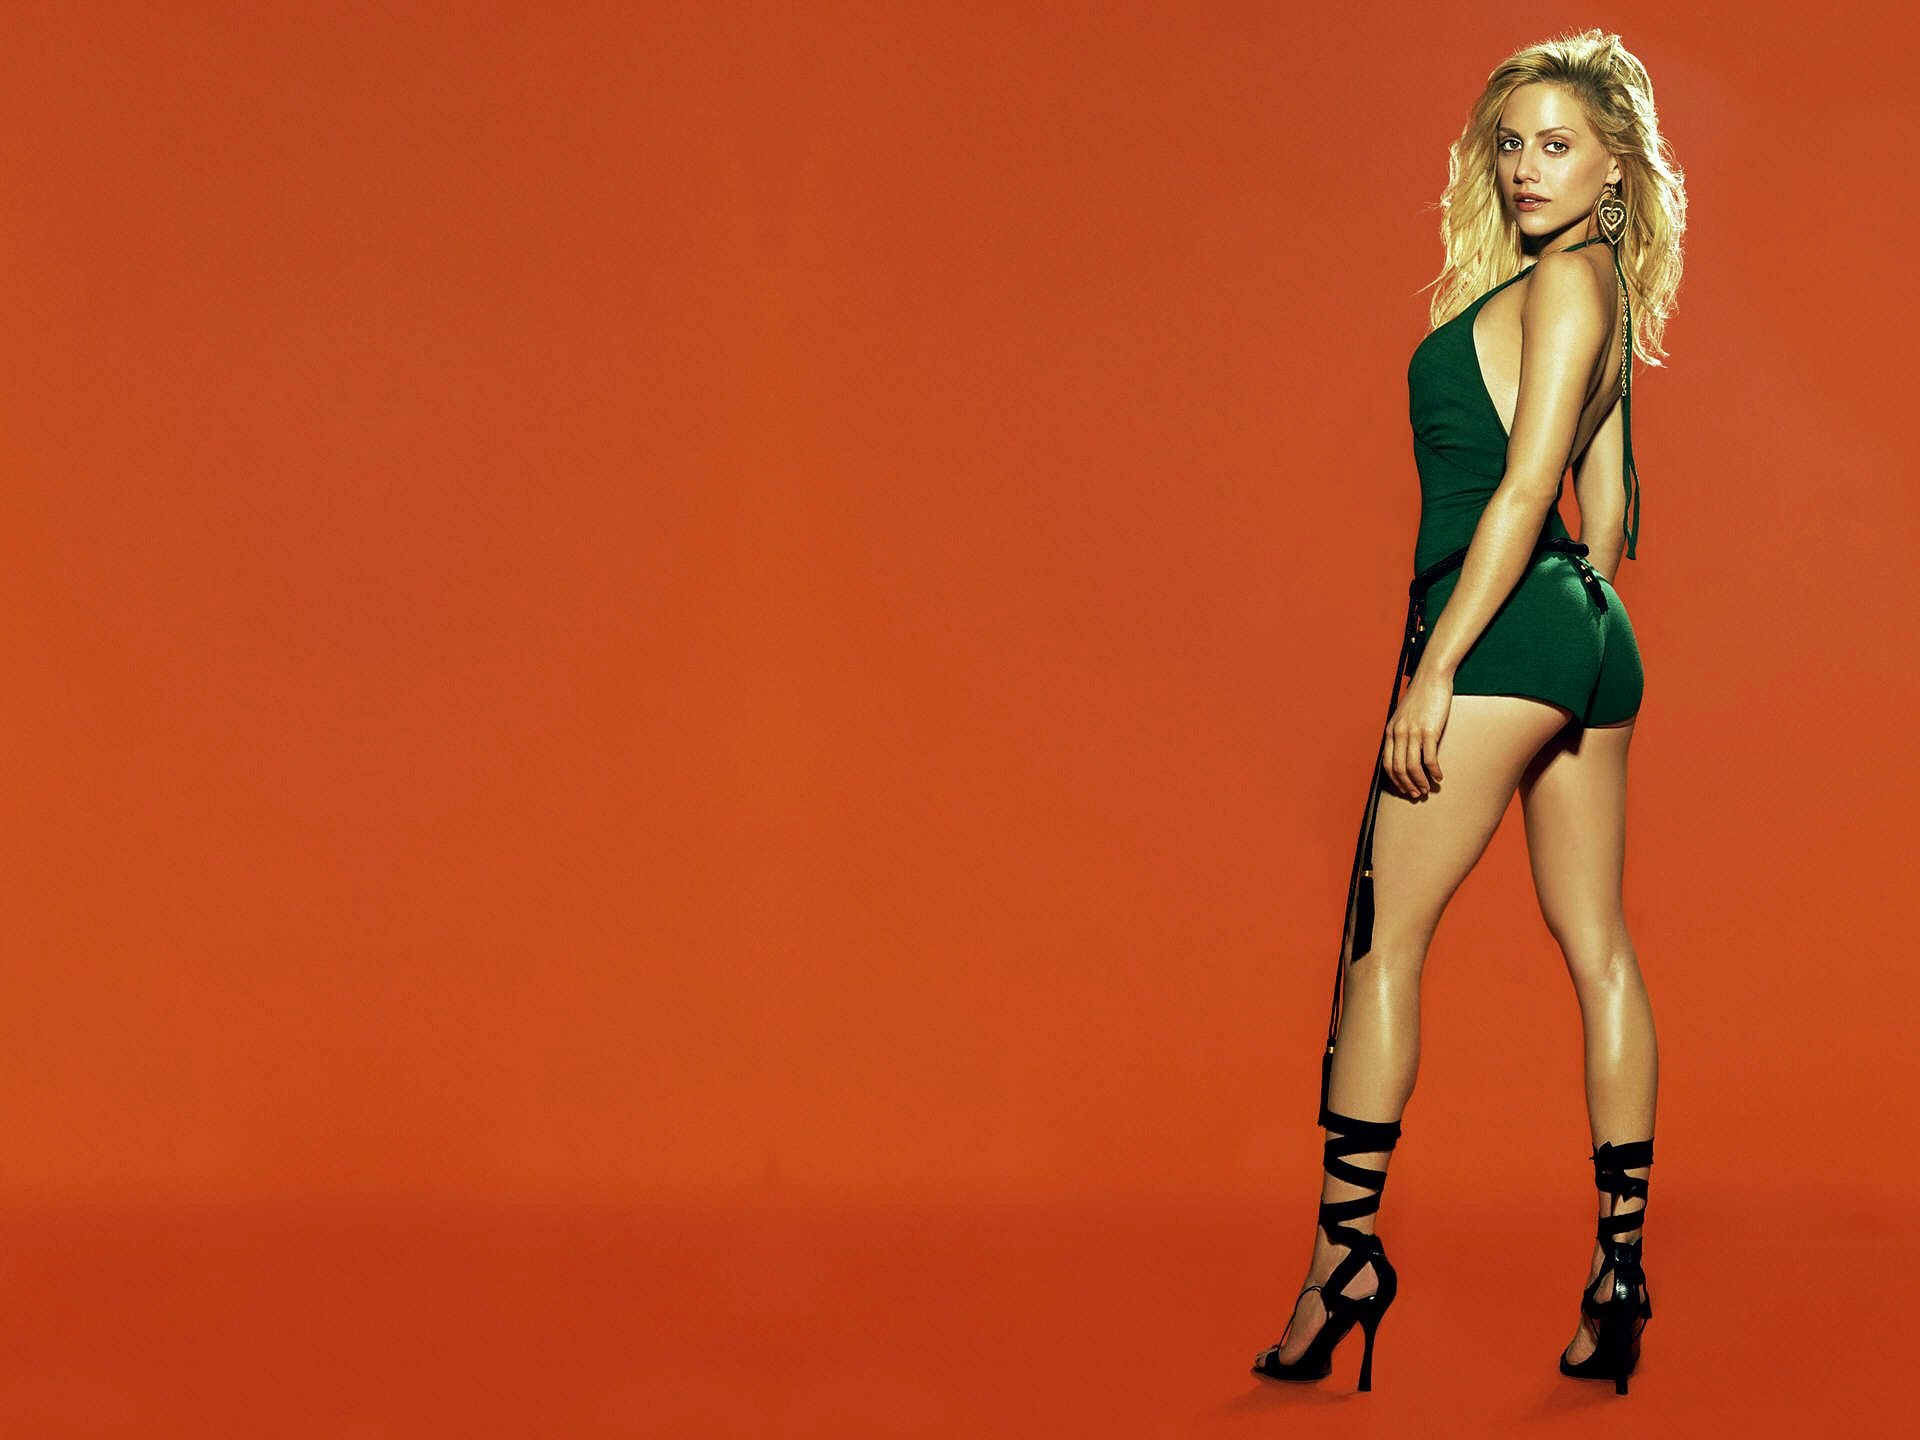 1920x1440 - Brittany Murphy Wallpapers 12